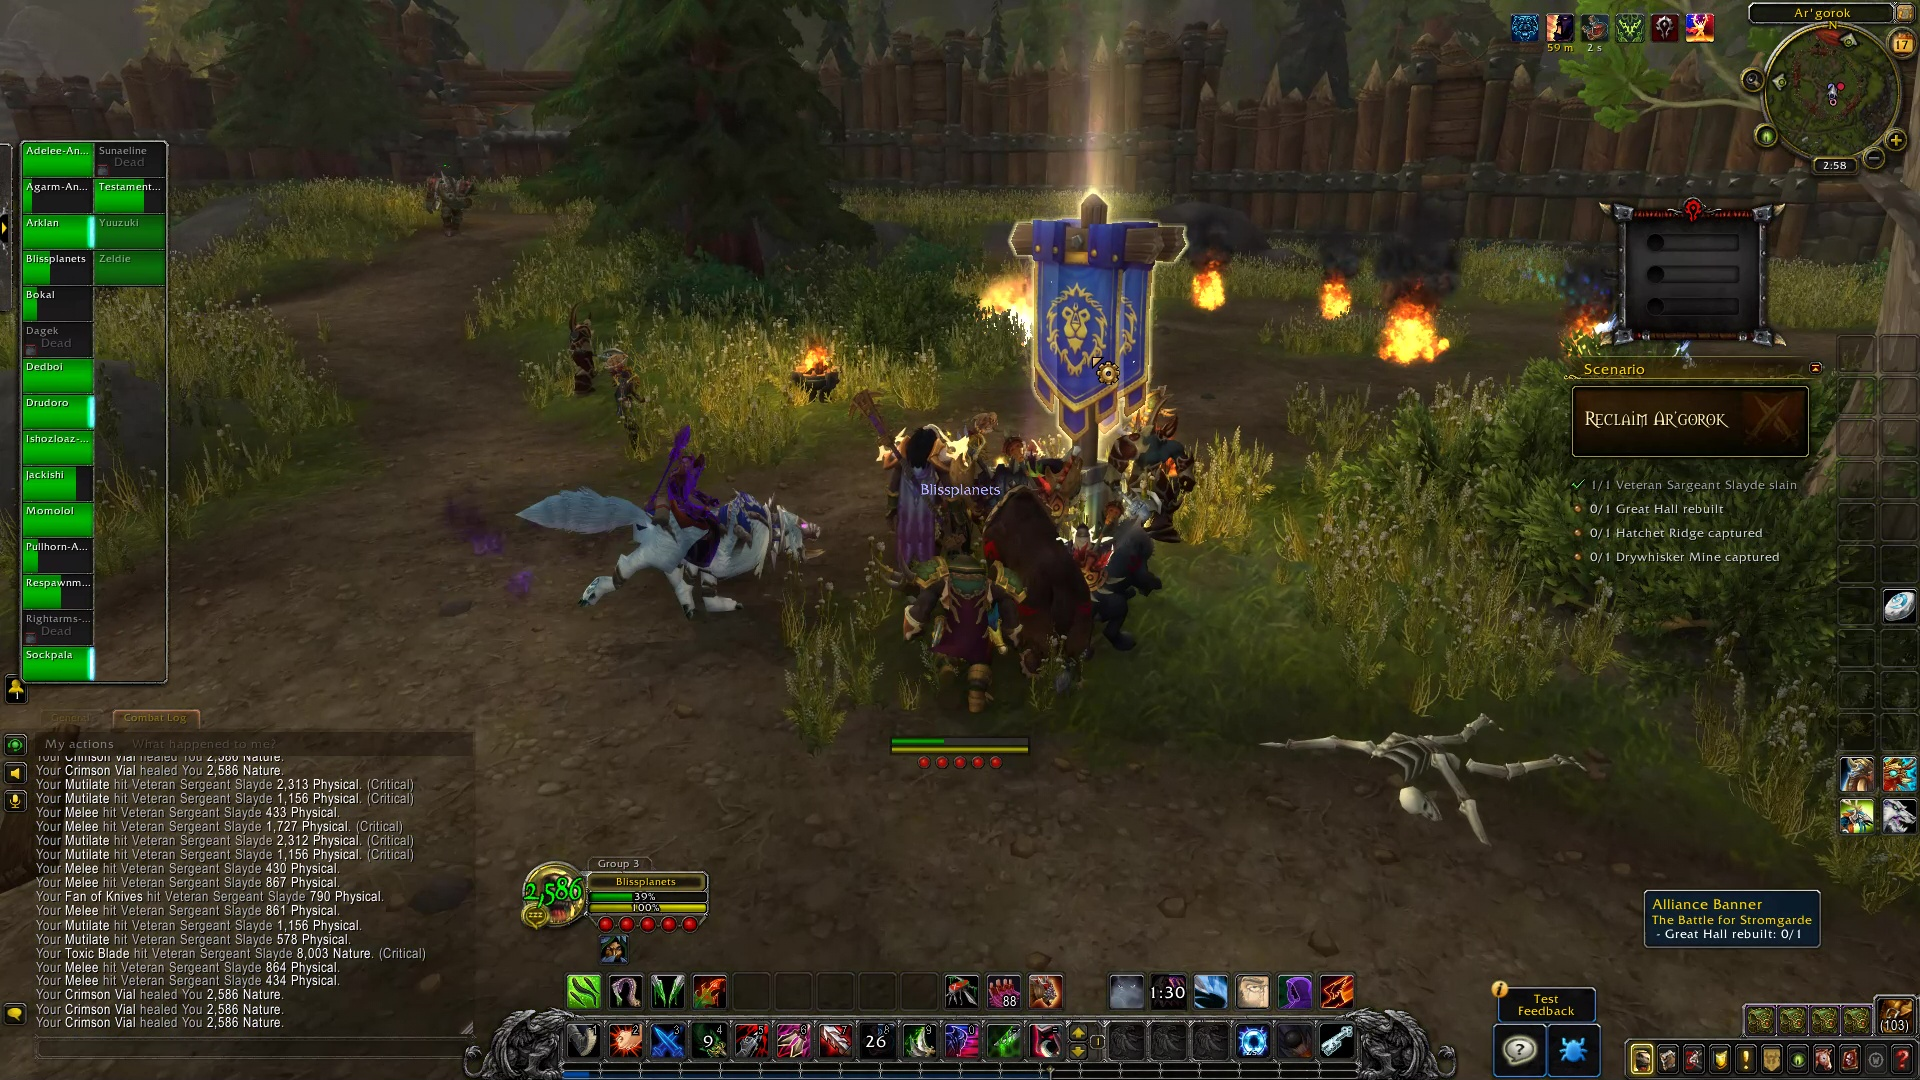 Battle for Azeroth Alpha: War Fronts (Horde) Video - Blizzplanet